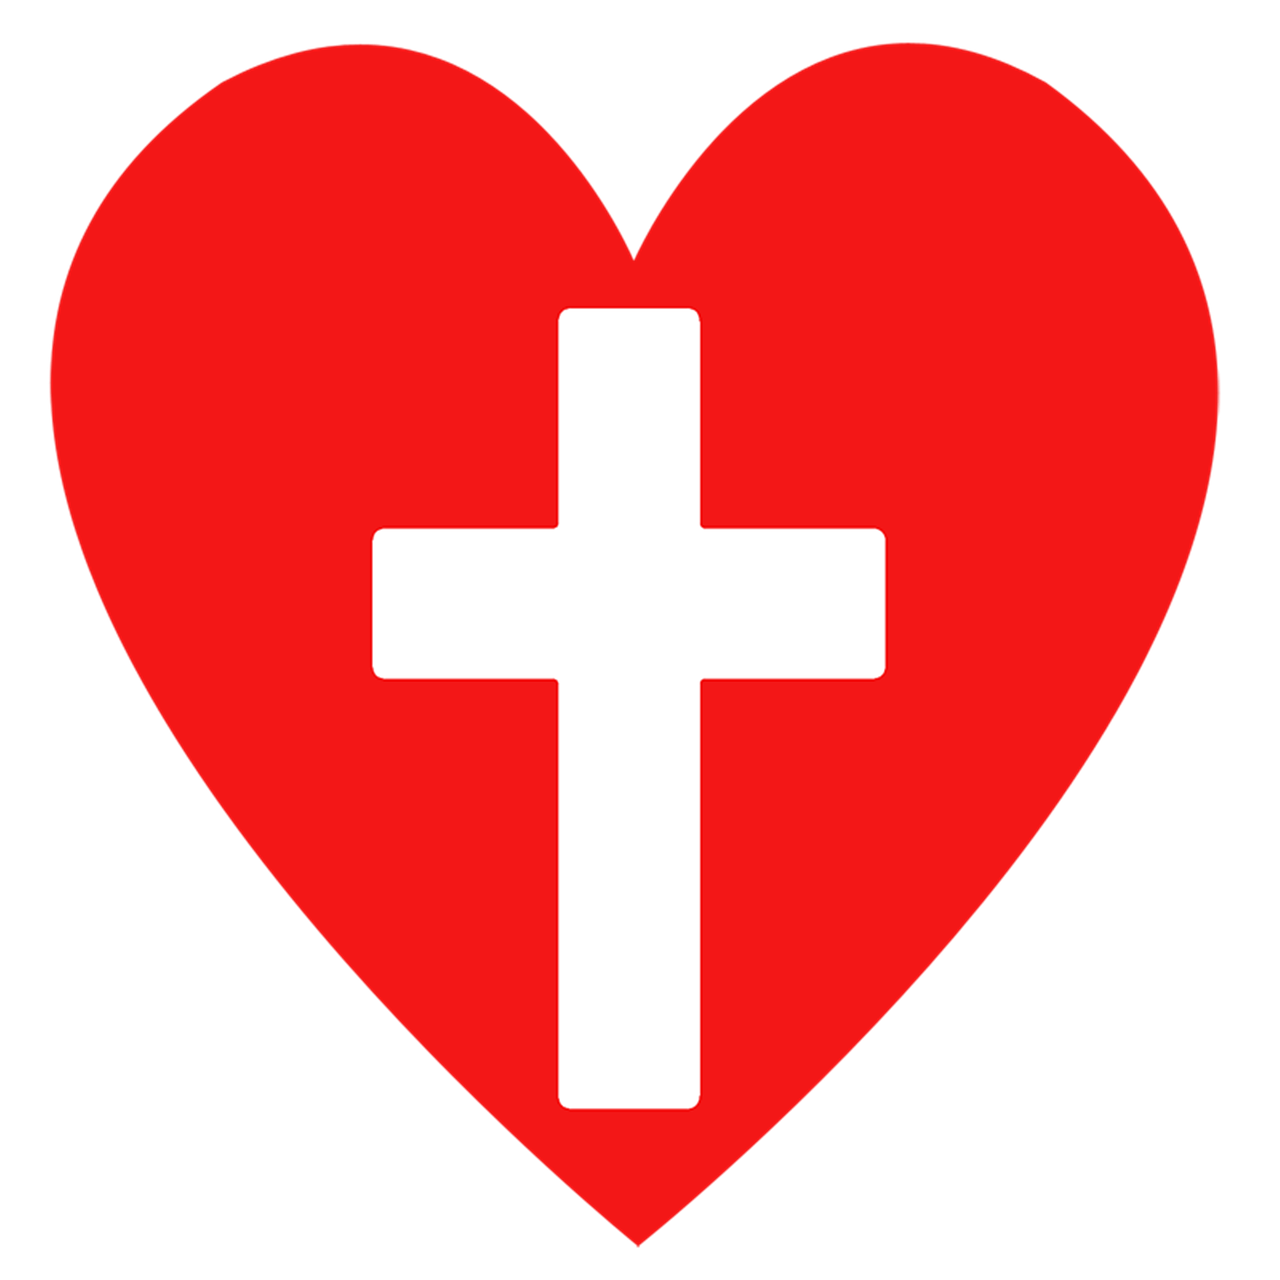 Jesus heart clipart transparent stock Heart Red Design Love Jesus PNG Image - Picpng transparent stock